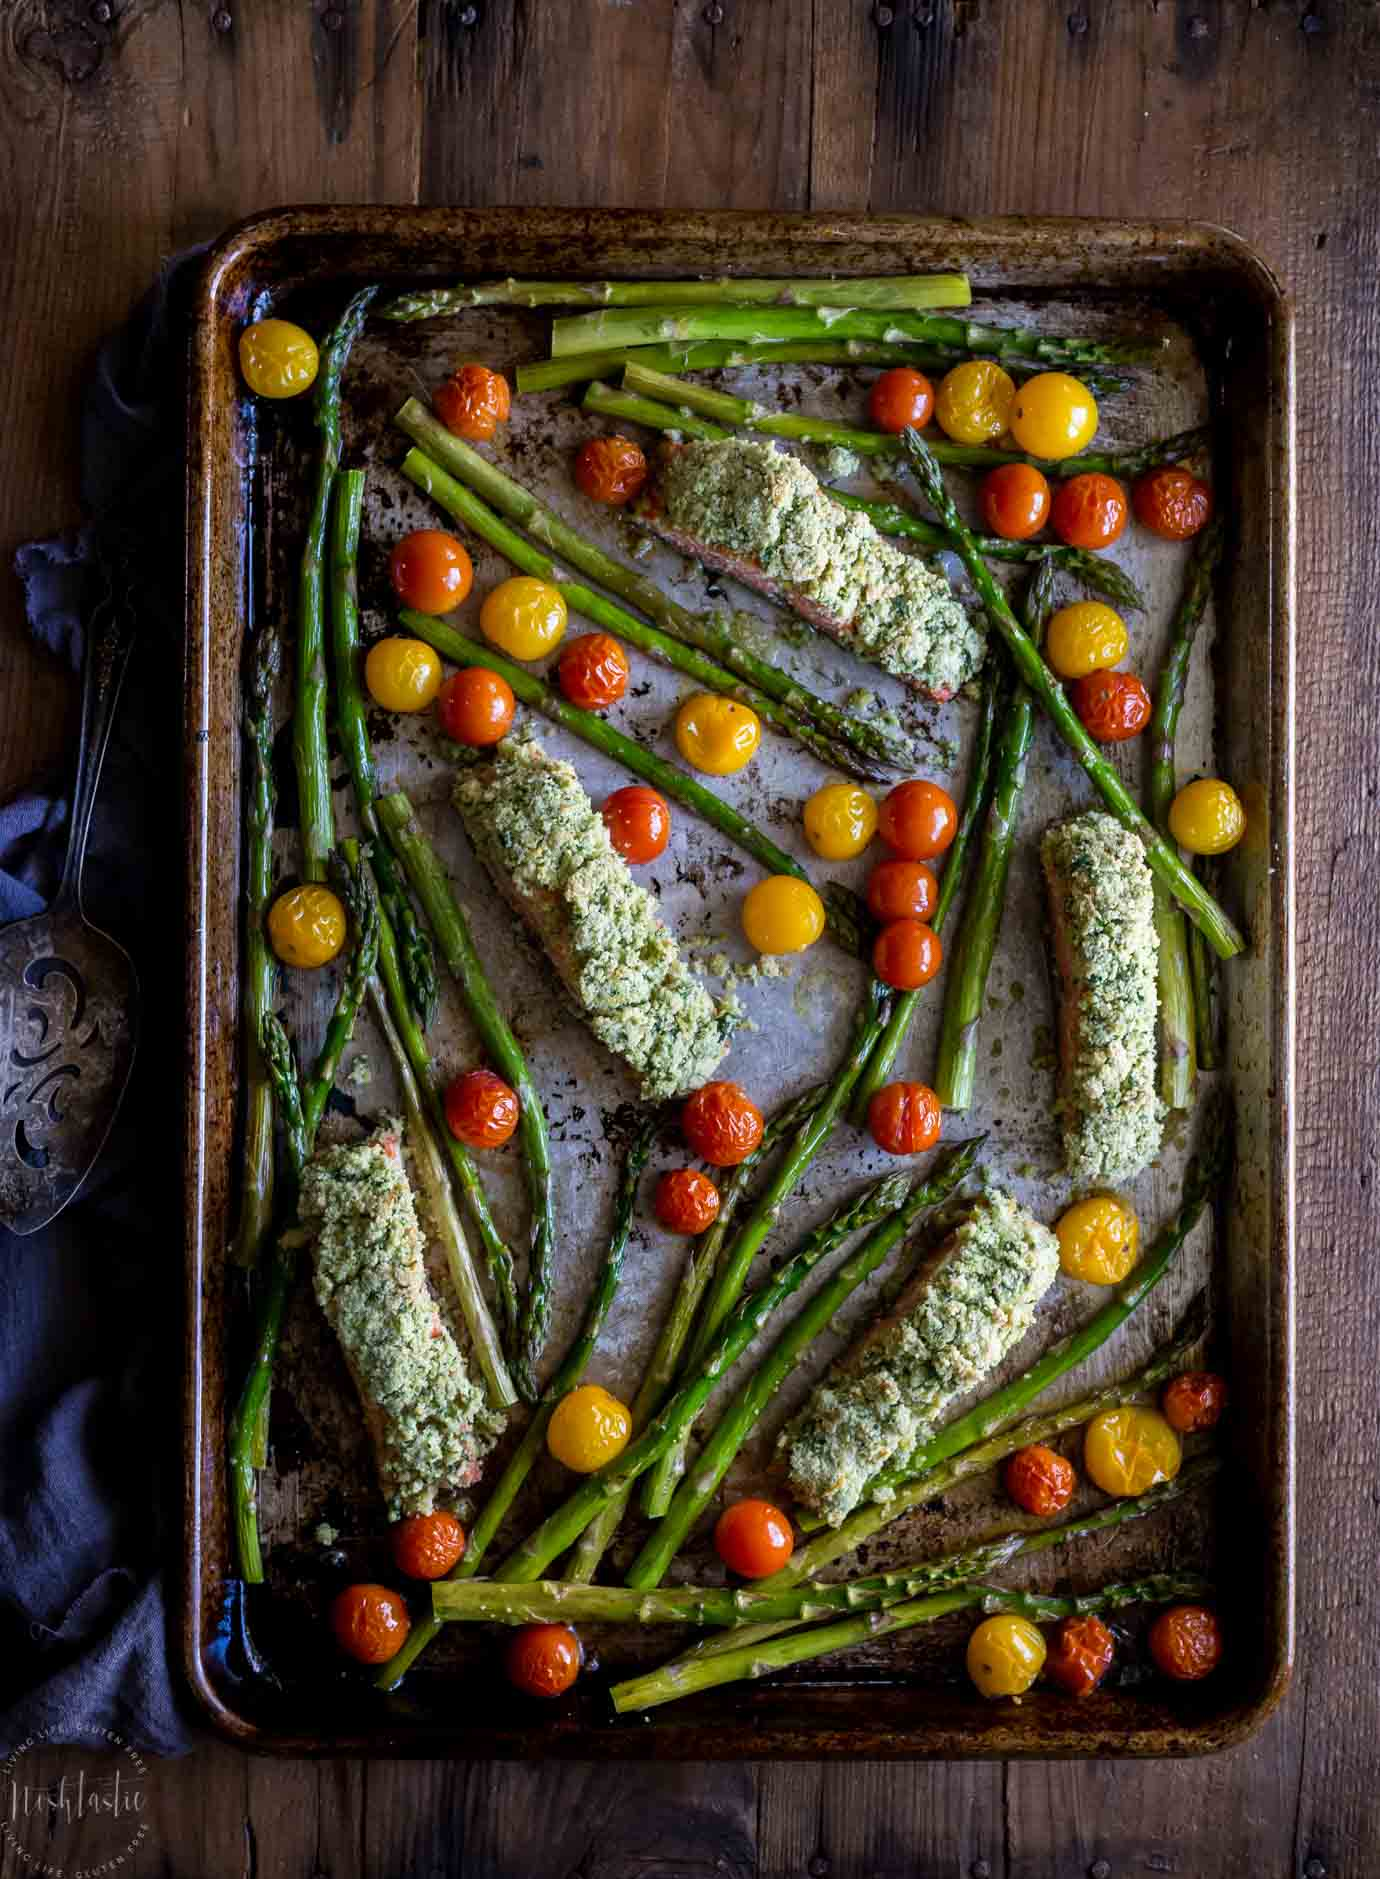 Easy Baked Salmon Gremolata recipe with Roasted Vegetables! This recipe is Paleo, Whole30, low carb, low calorie and very healthy!